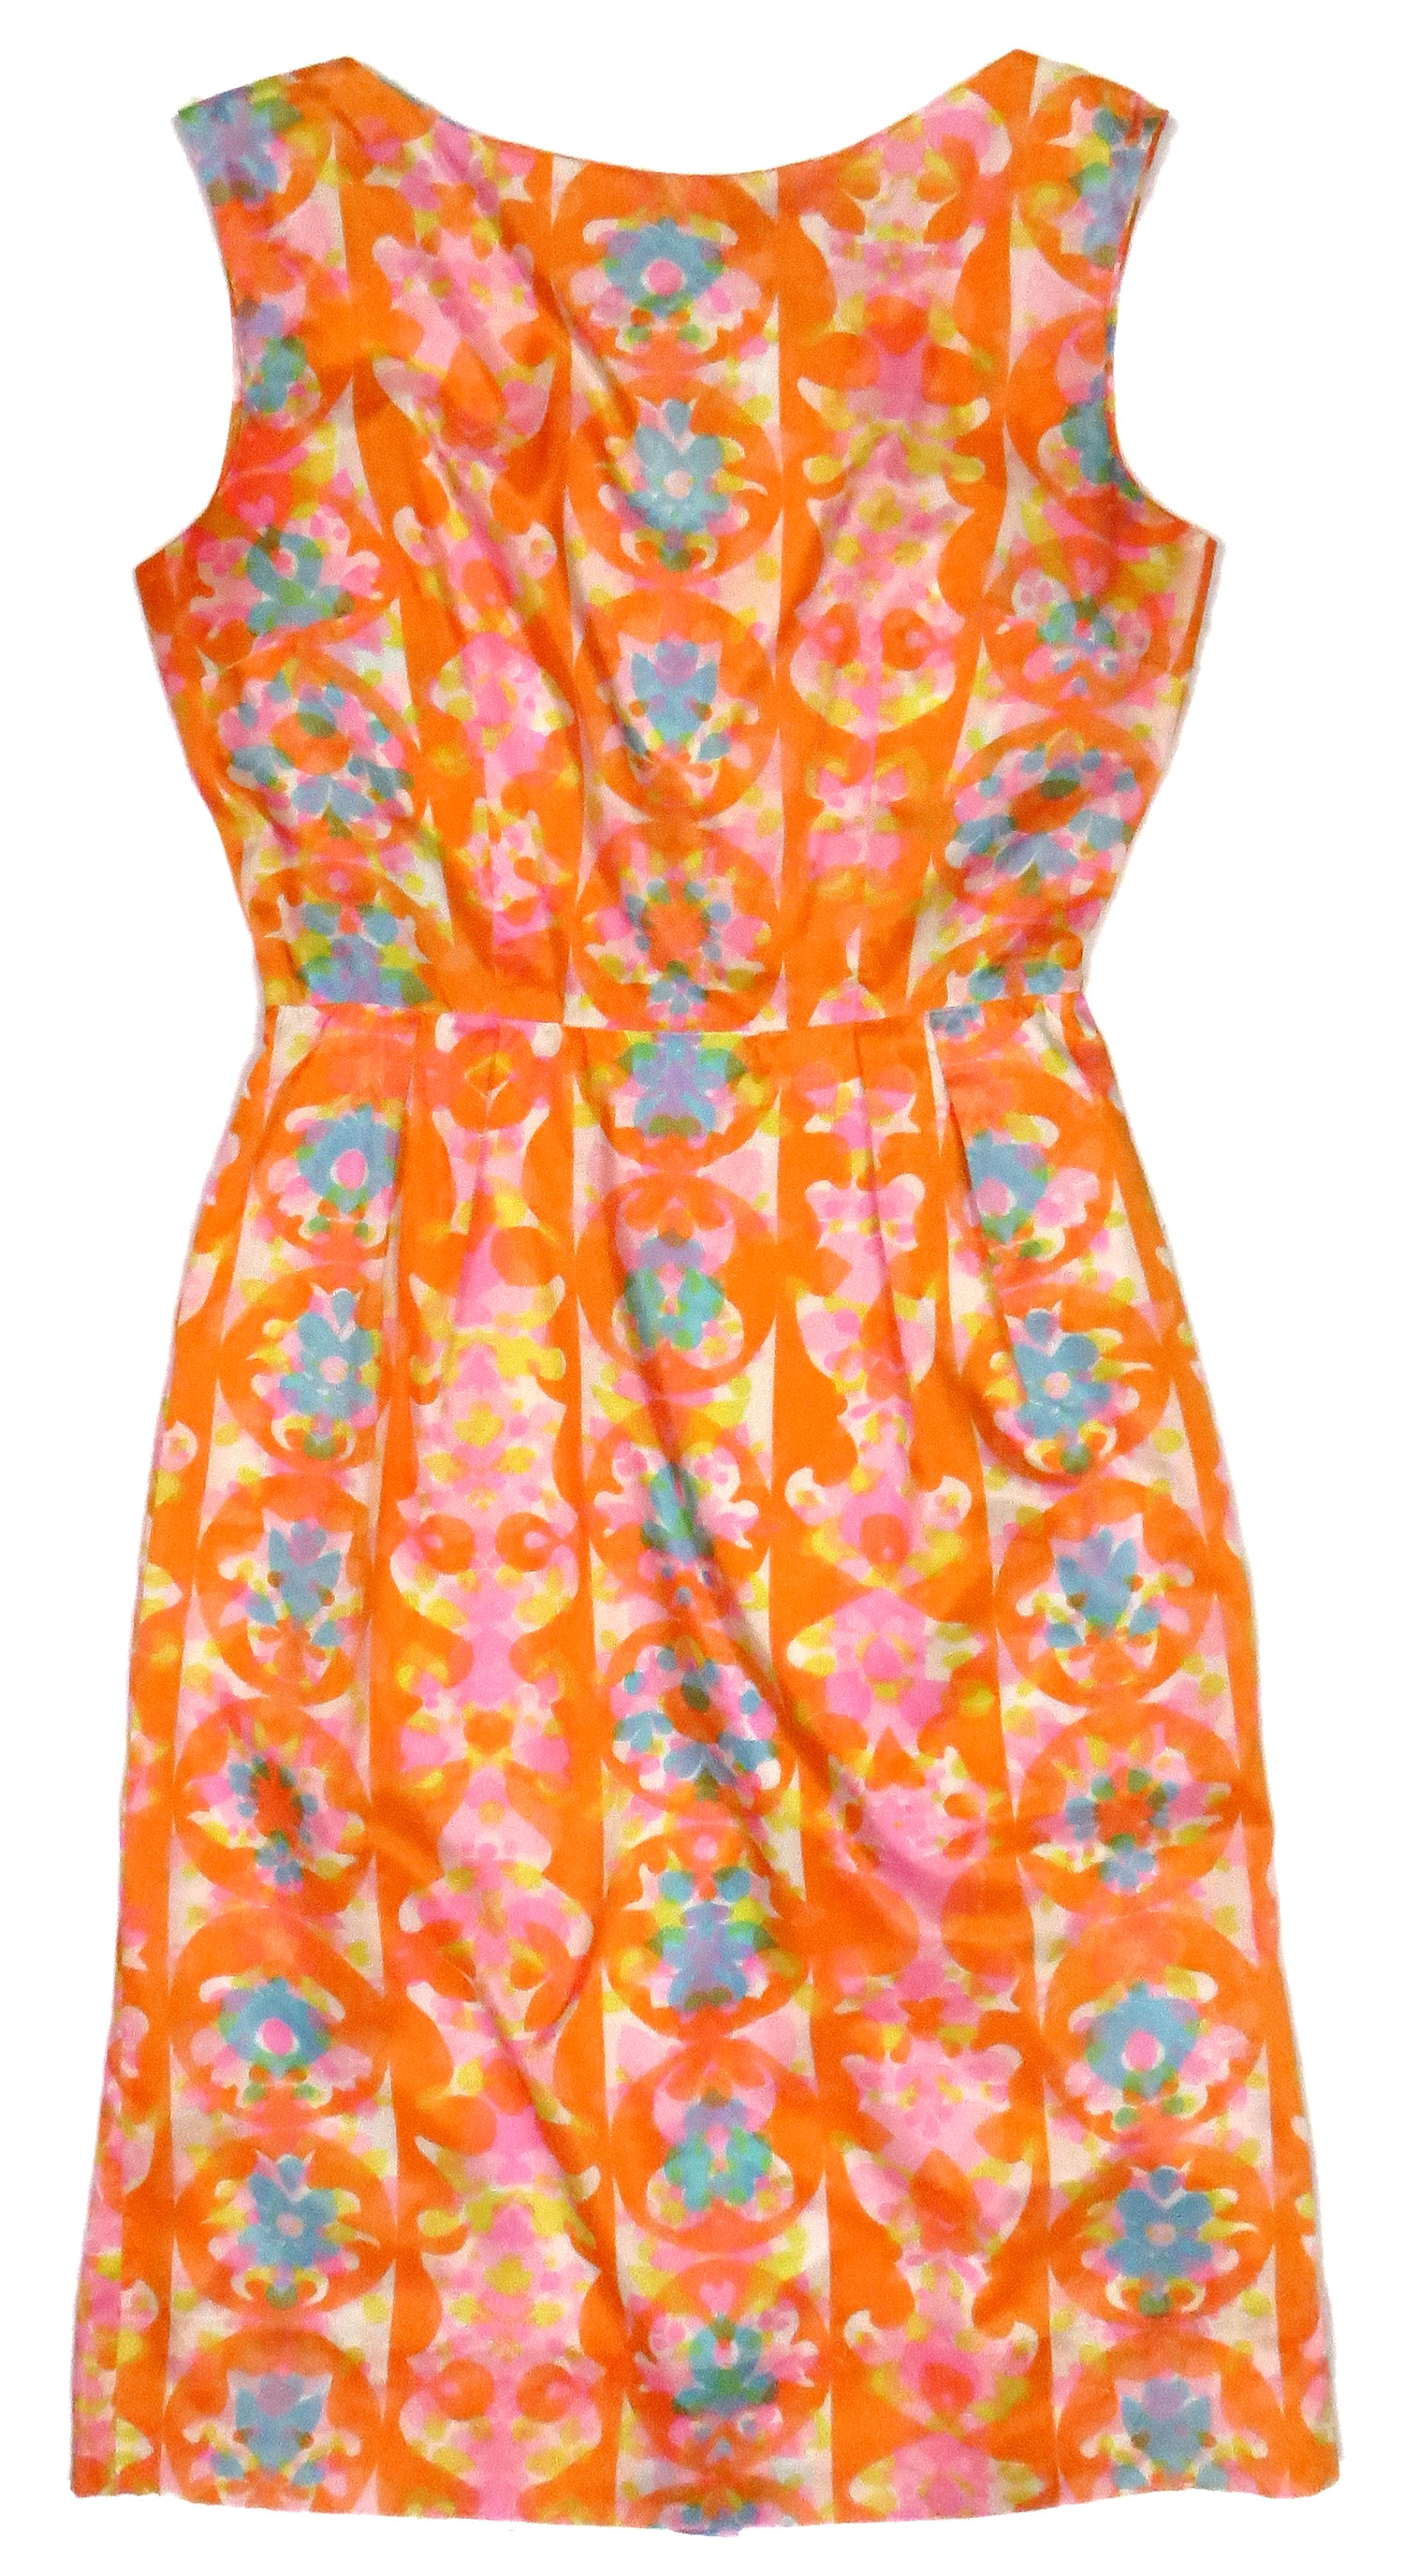 '60s Abstract Floral Cocktail Dress